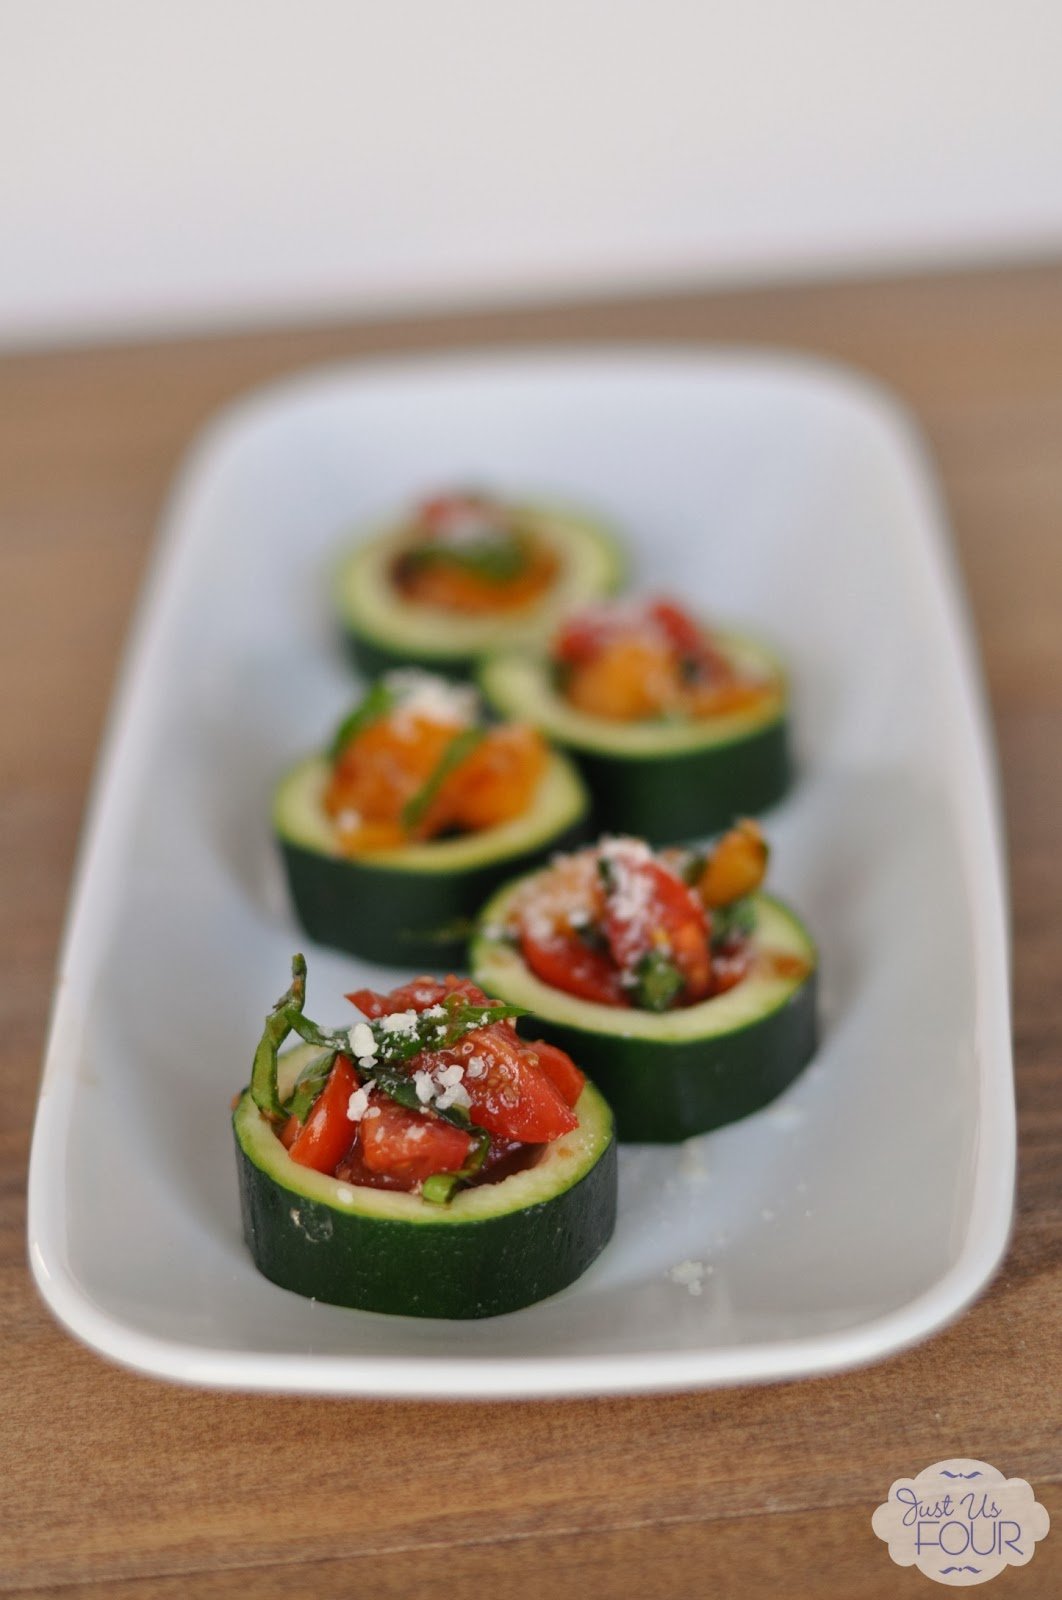 Zucchini+Cups+on+Plate+2_wm.jpg